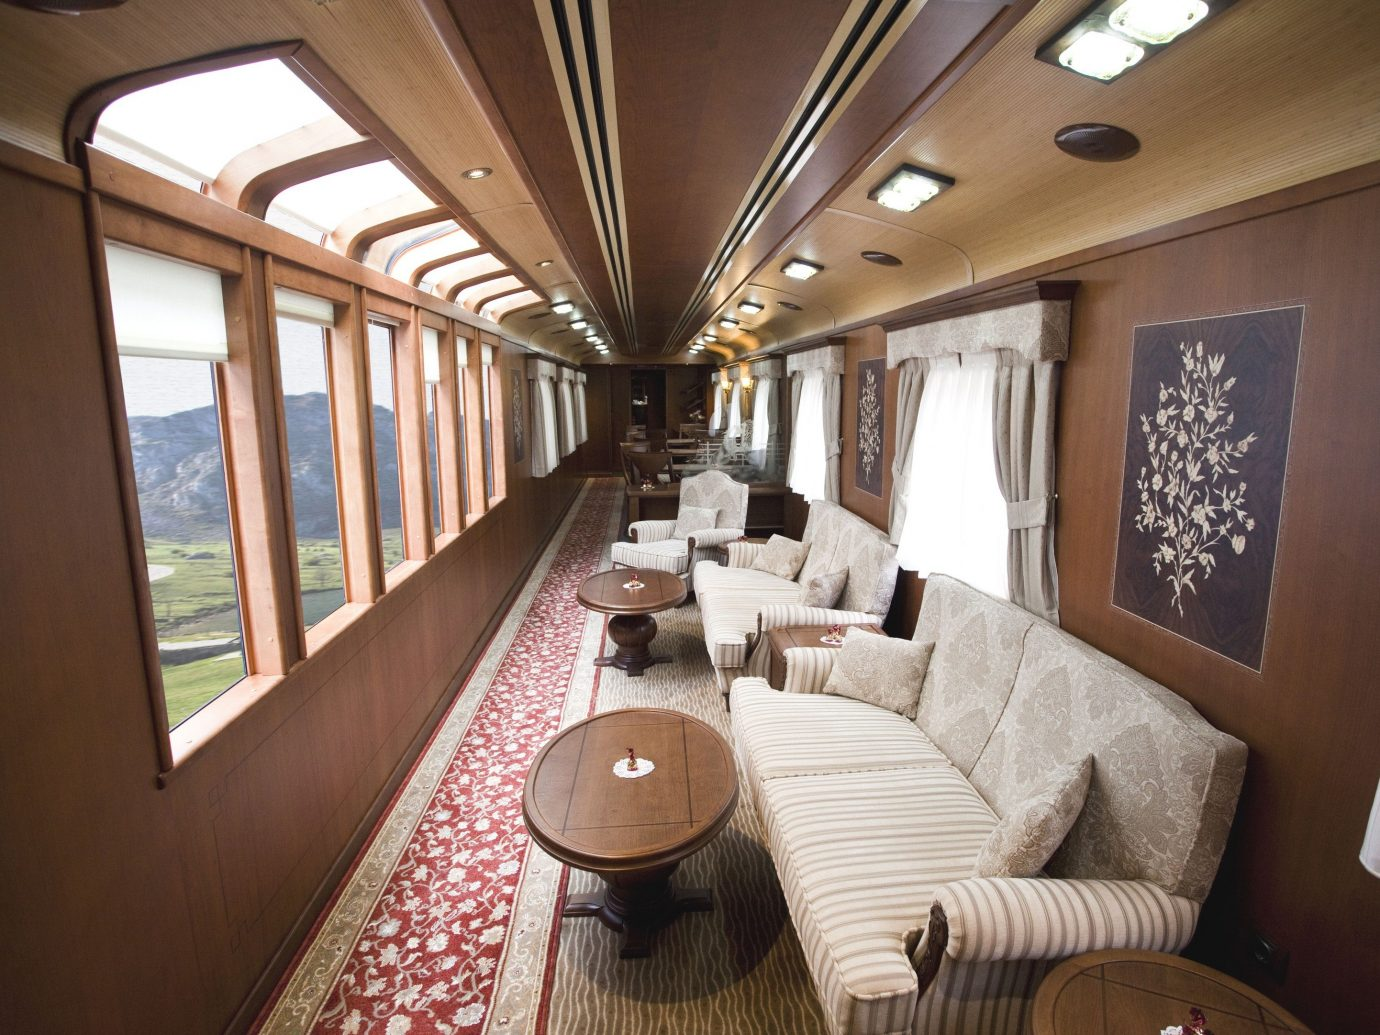 Trip Ideas indoor room property vehicle living room estate interior design home yacht cottage furniture decorated